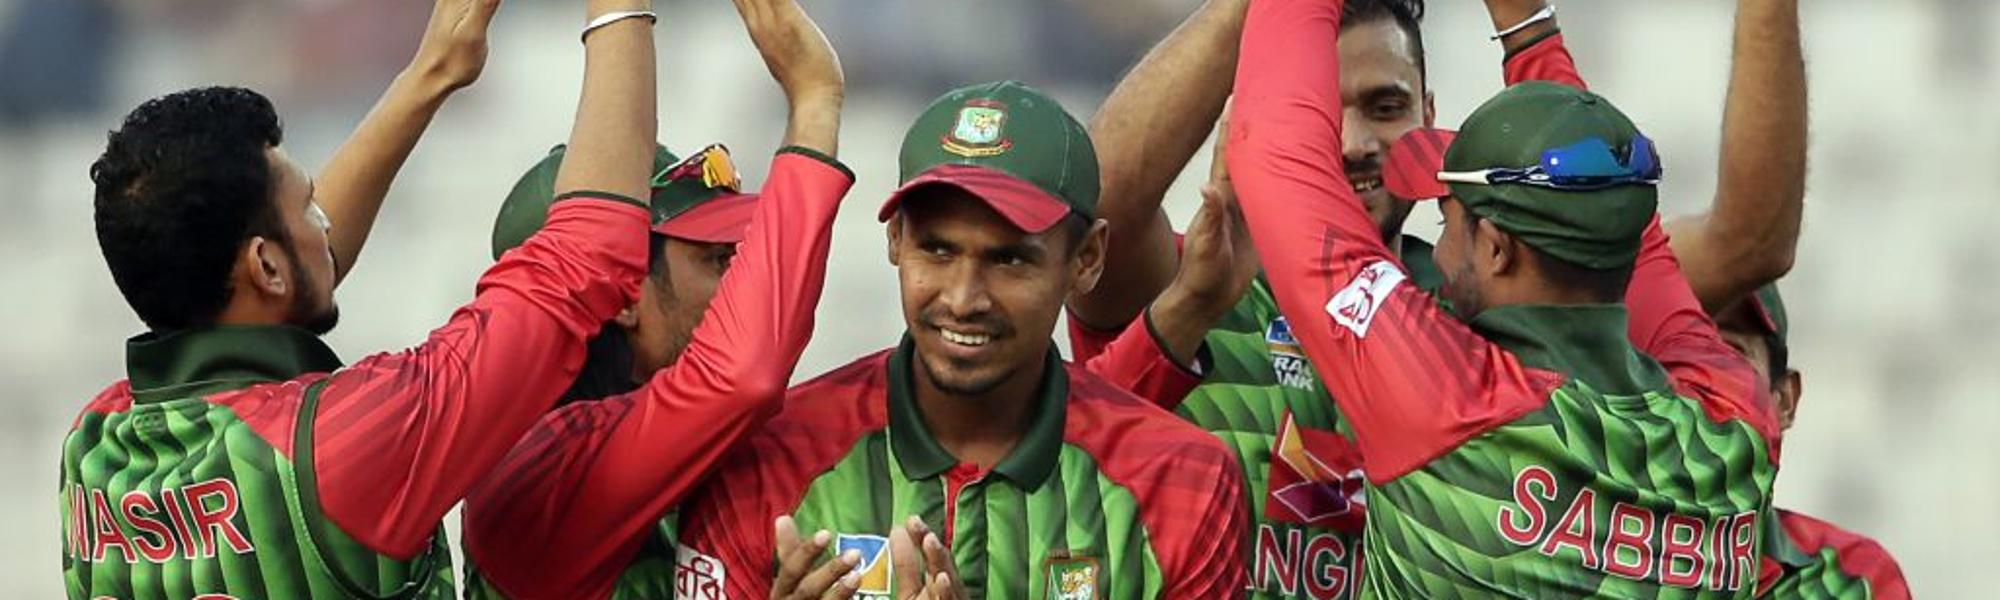 Bangladesh celebrate victory over Zimbabwe.jpg